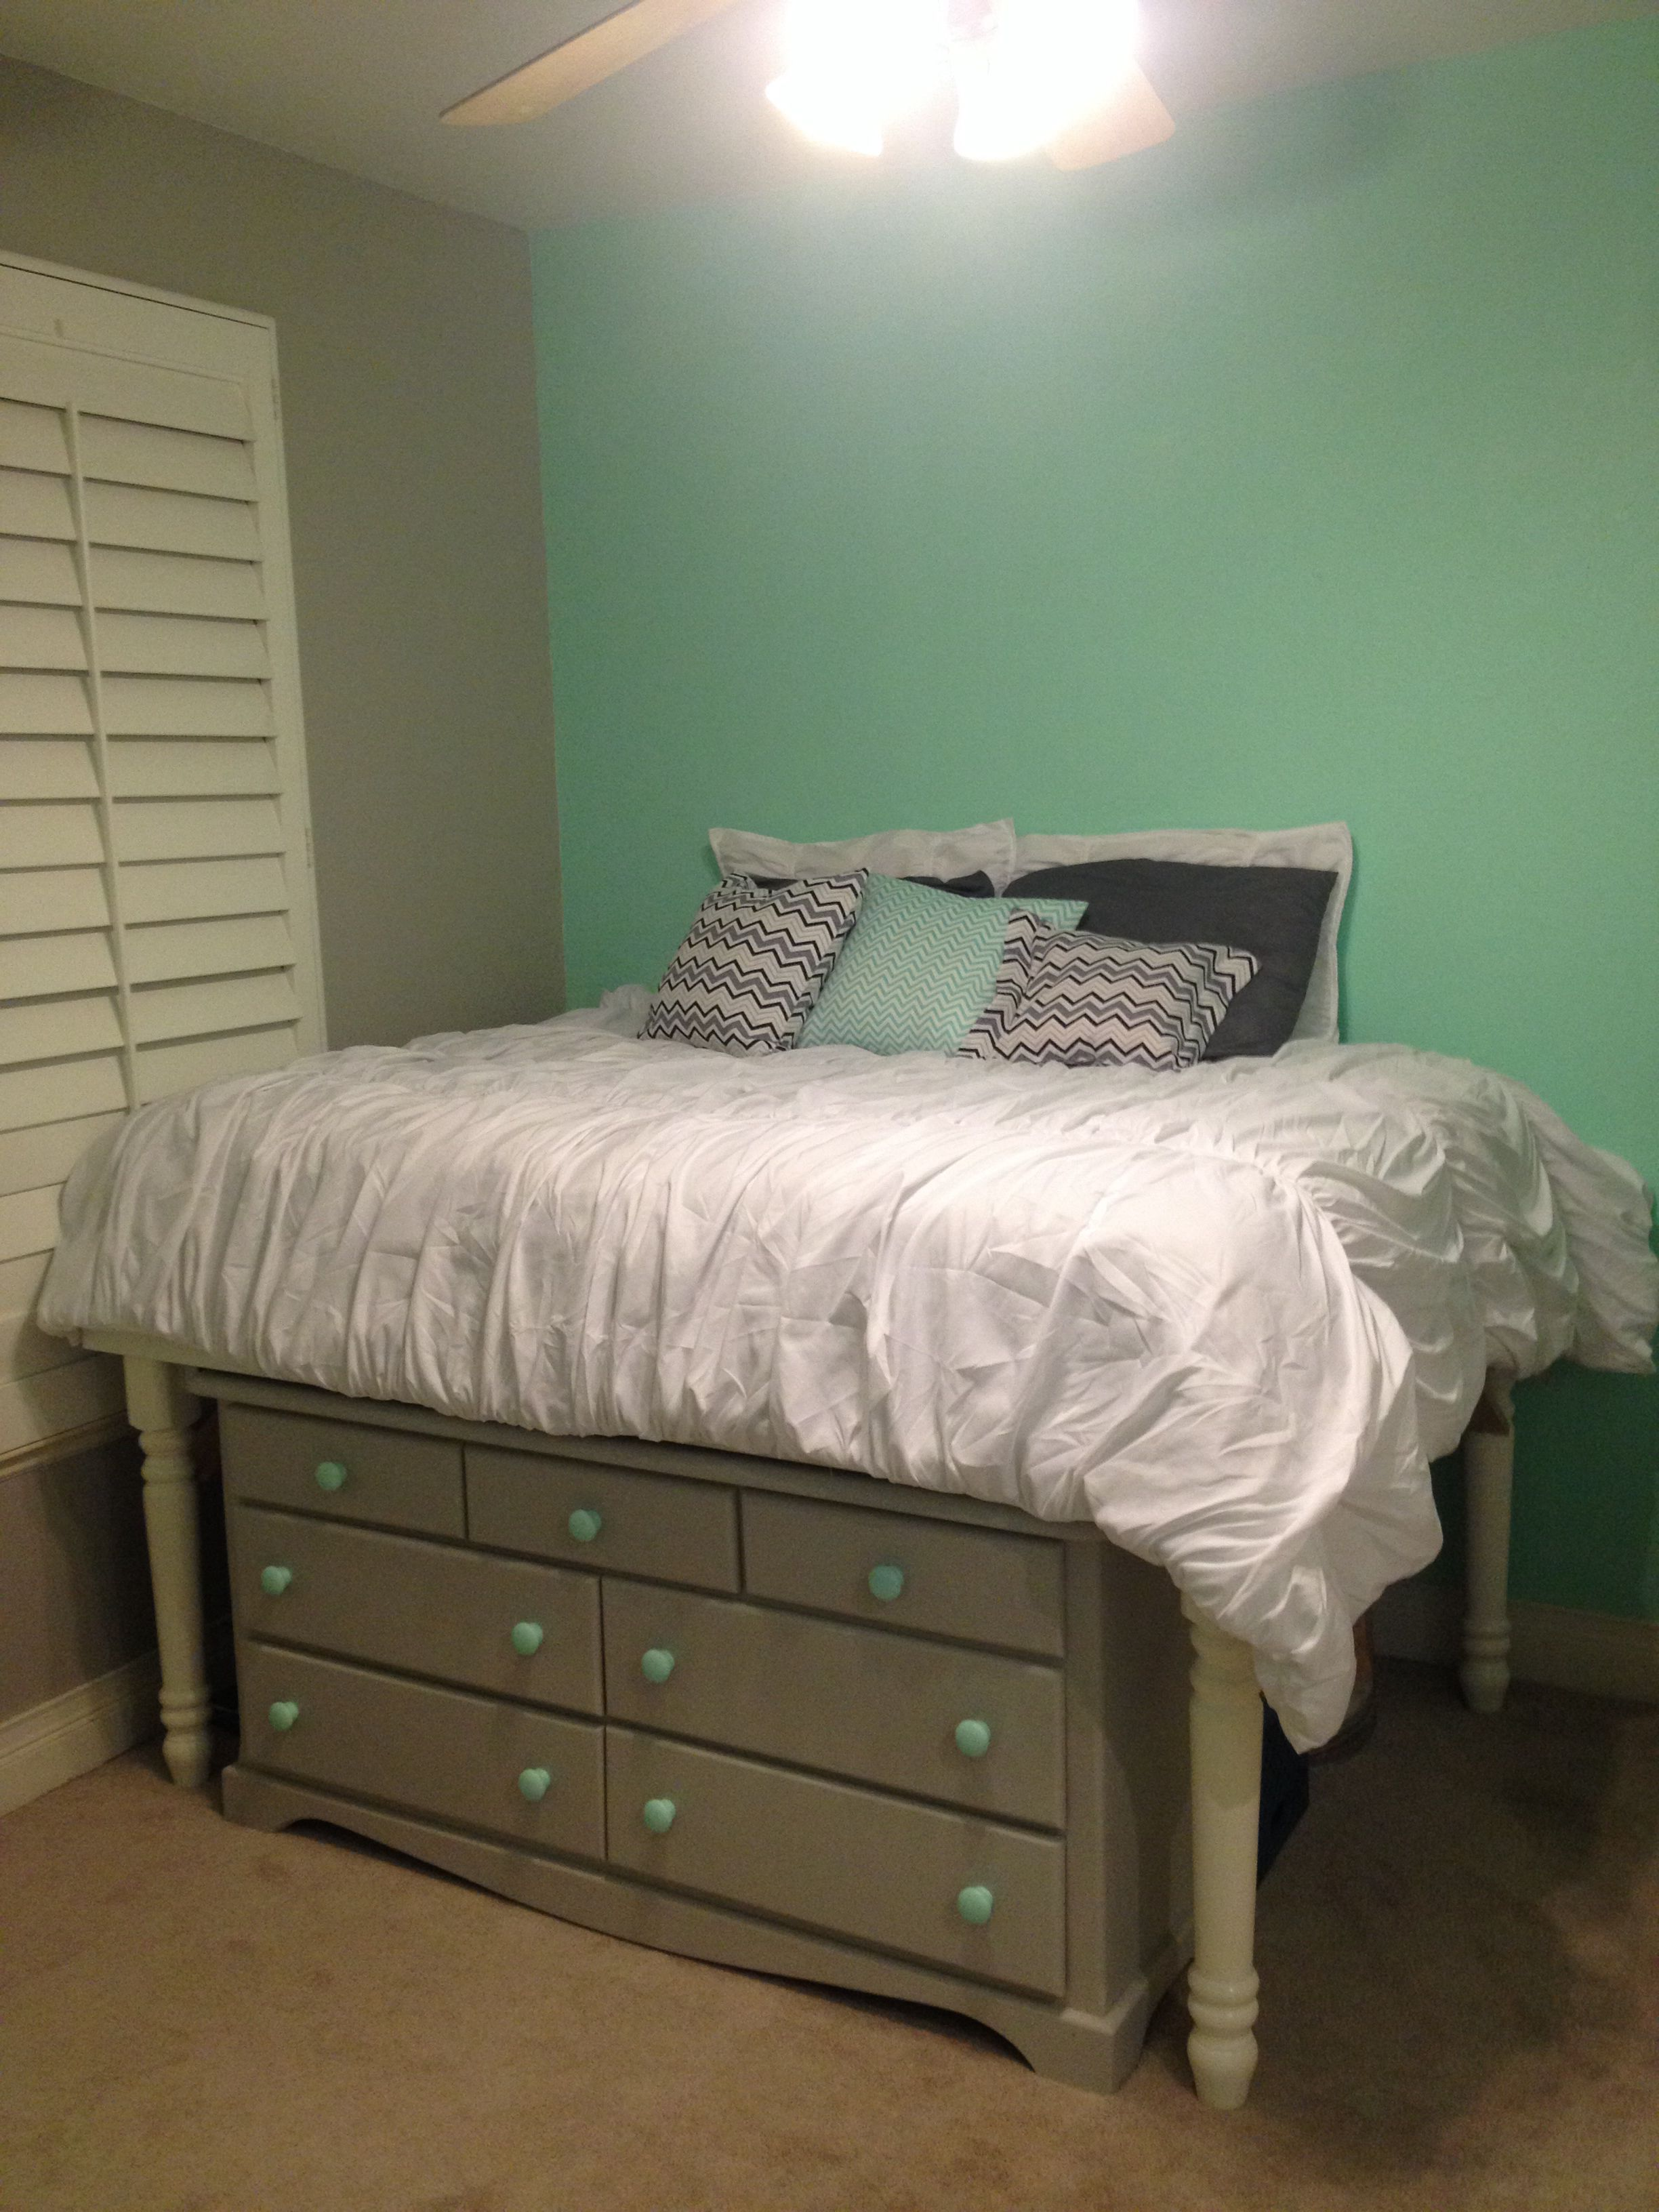 Diy Bedroom To Give You Space Put The Dresser Under Your Bed